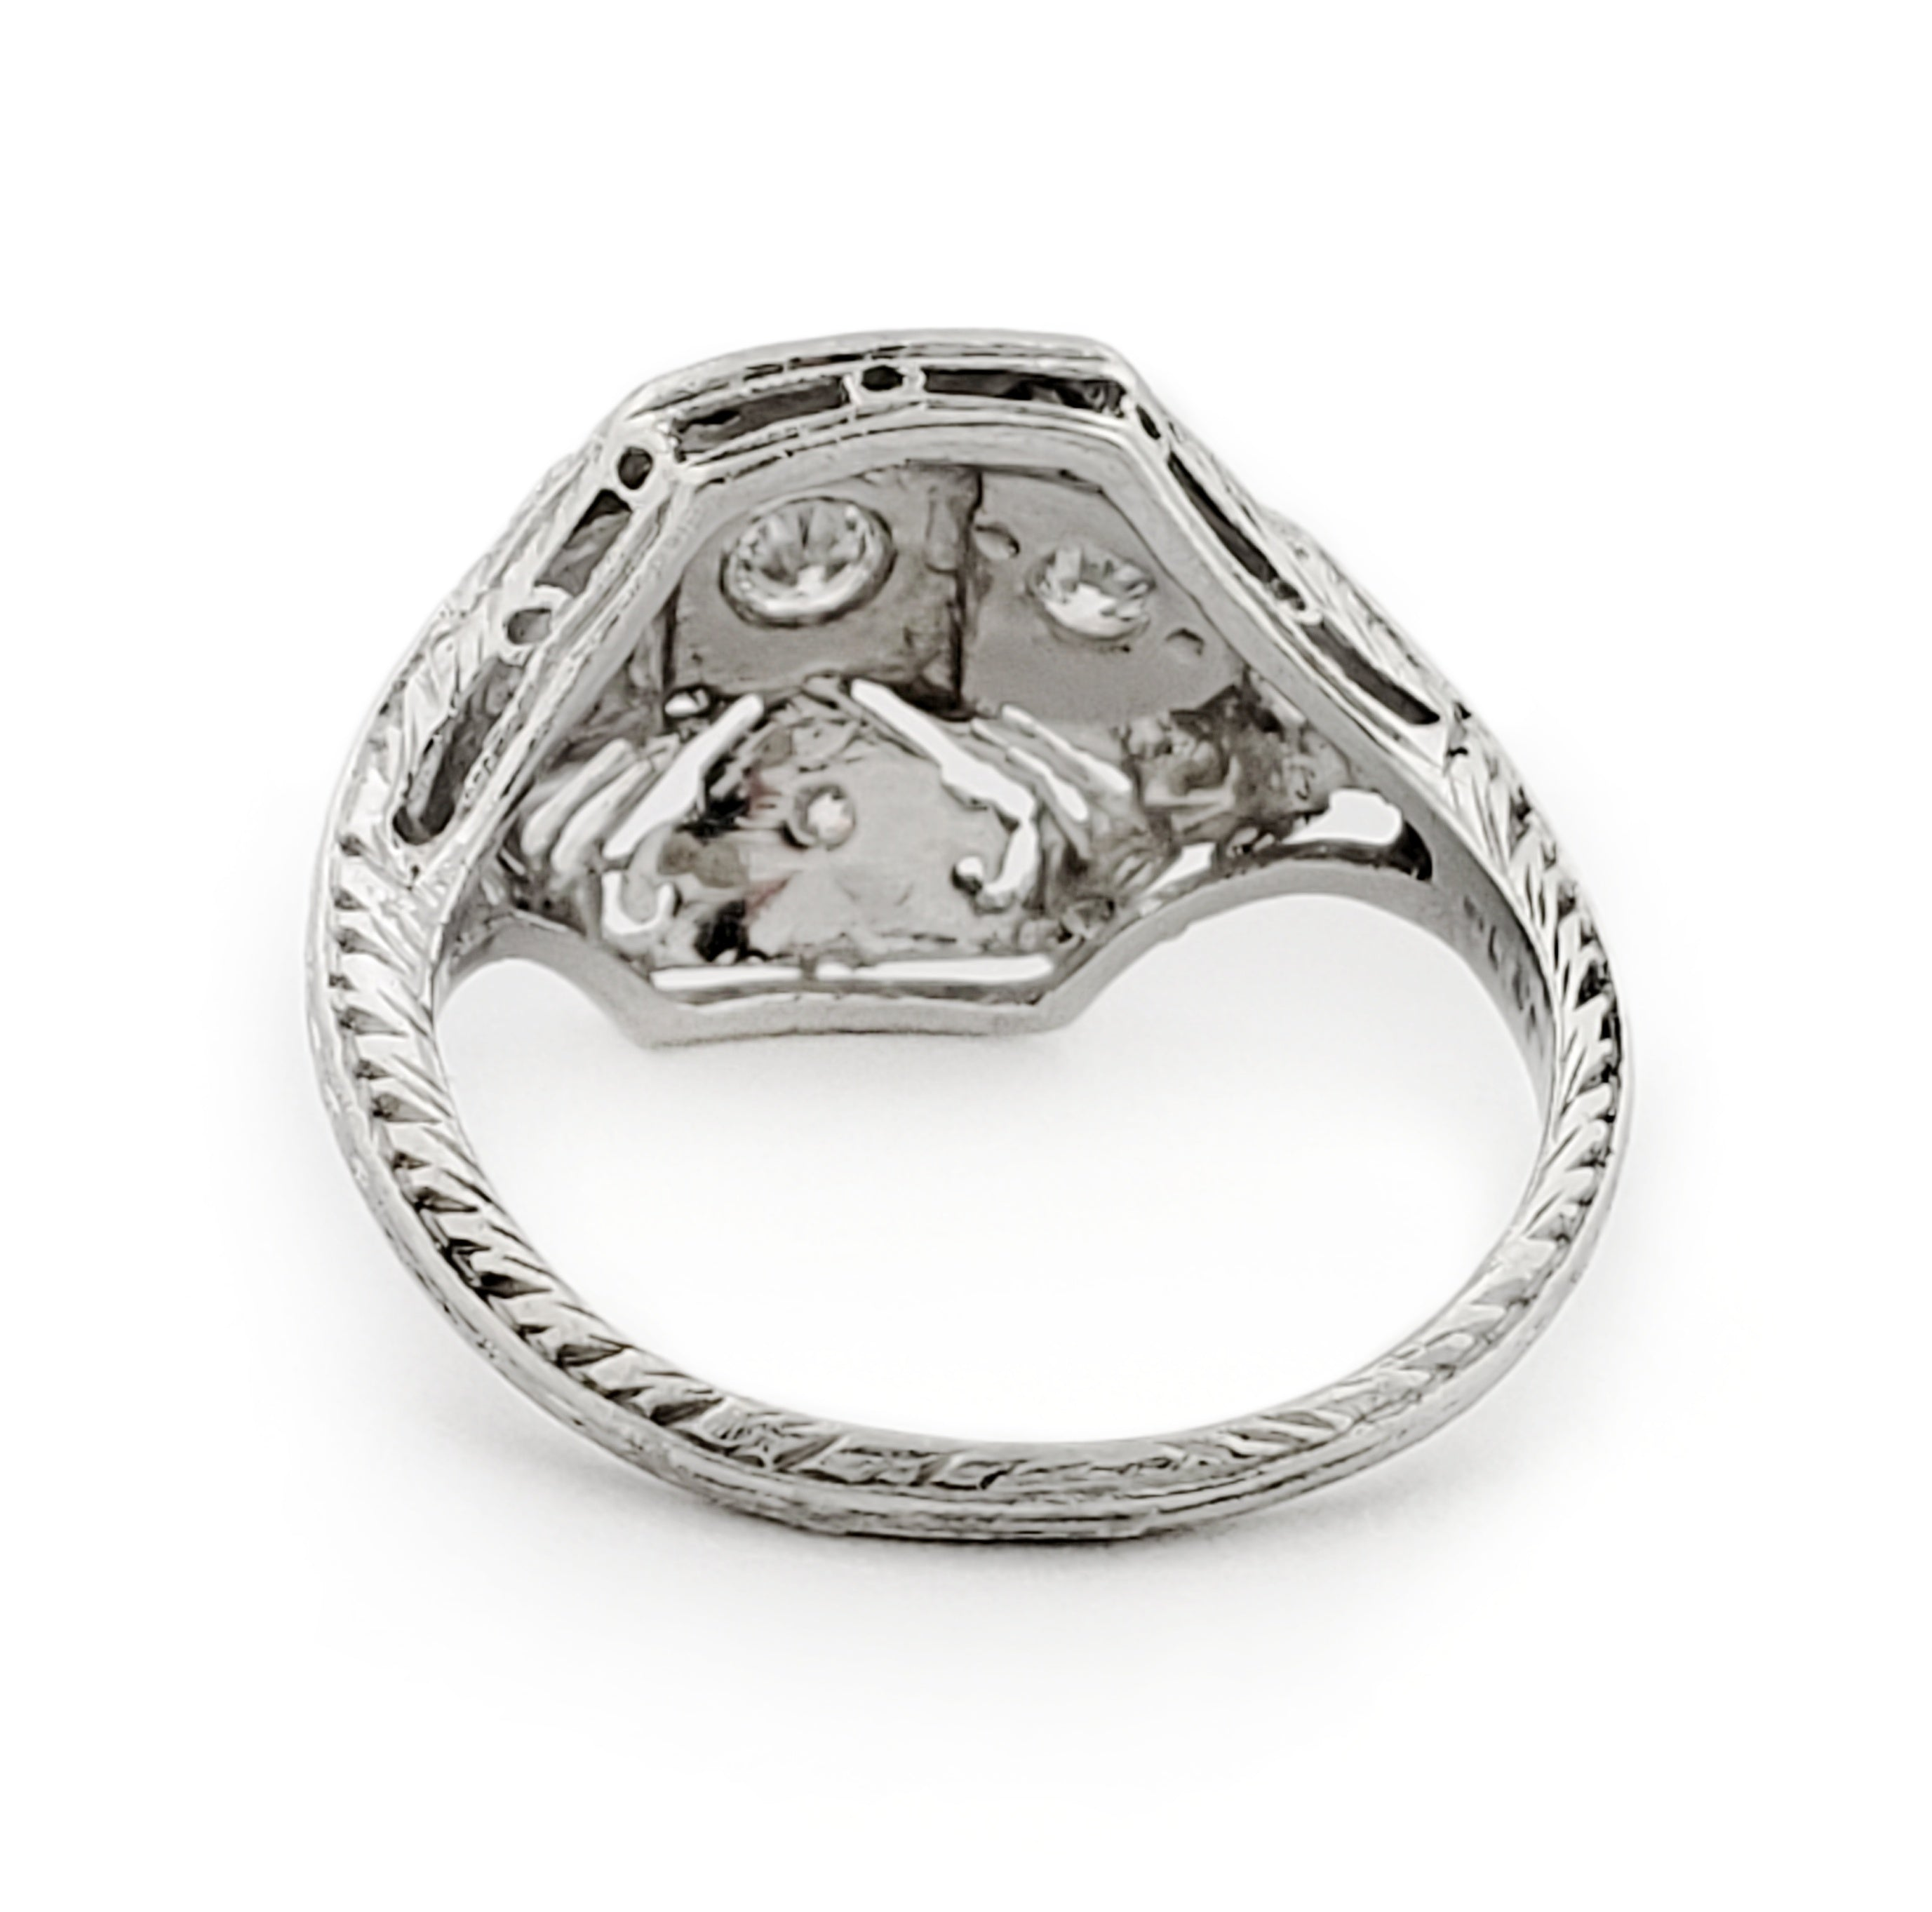 Vintage Edwardian Platinum Diamond Ring | Era Design Vancouver Canada